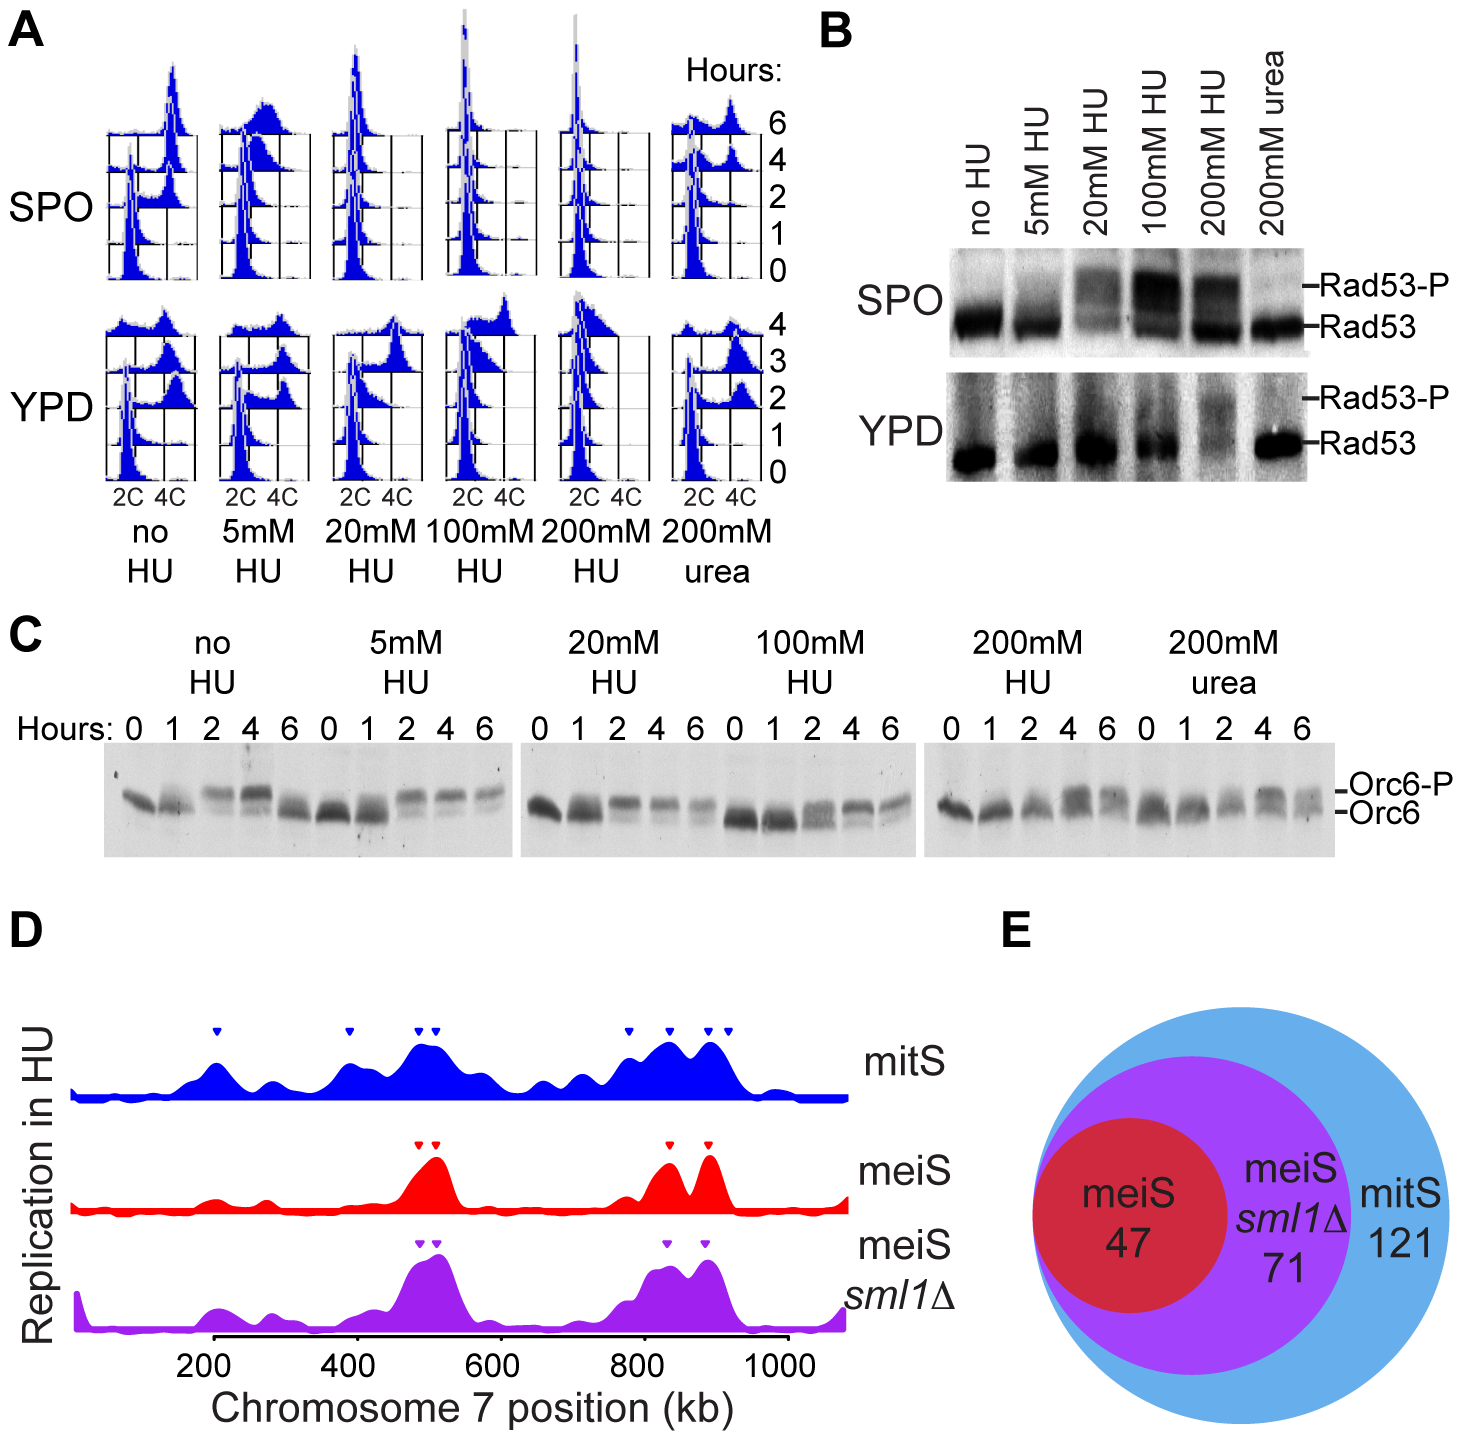 Reduced replication initiation in meiS.